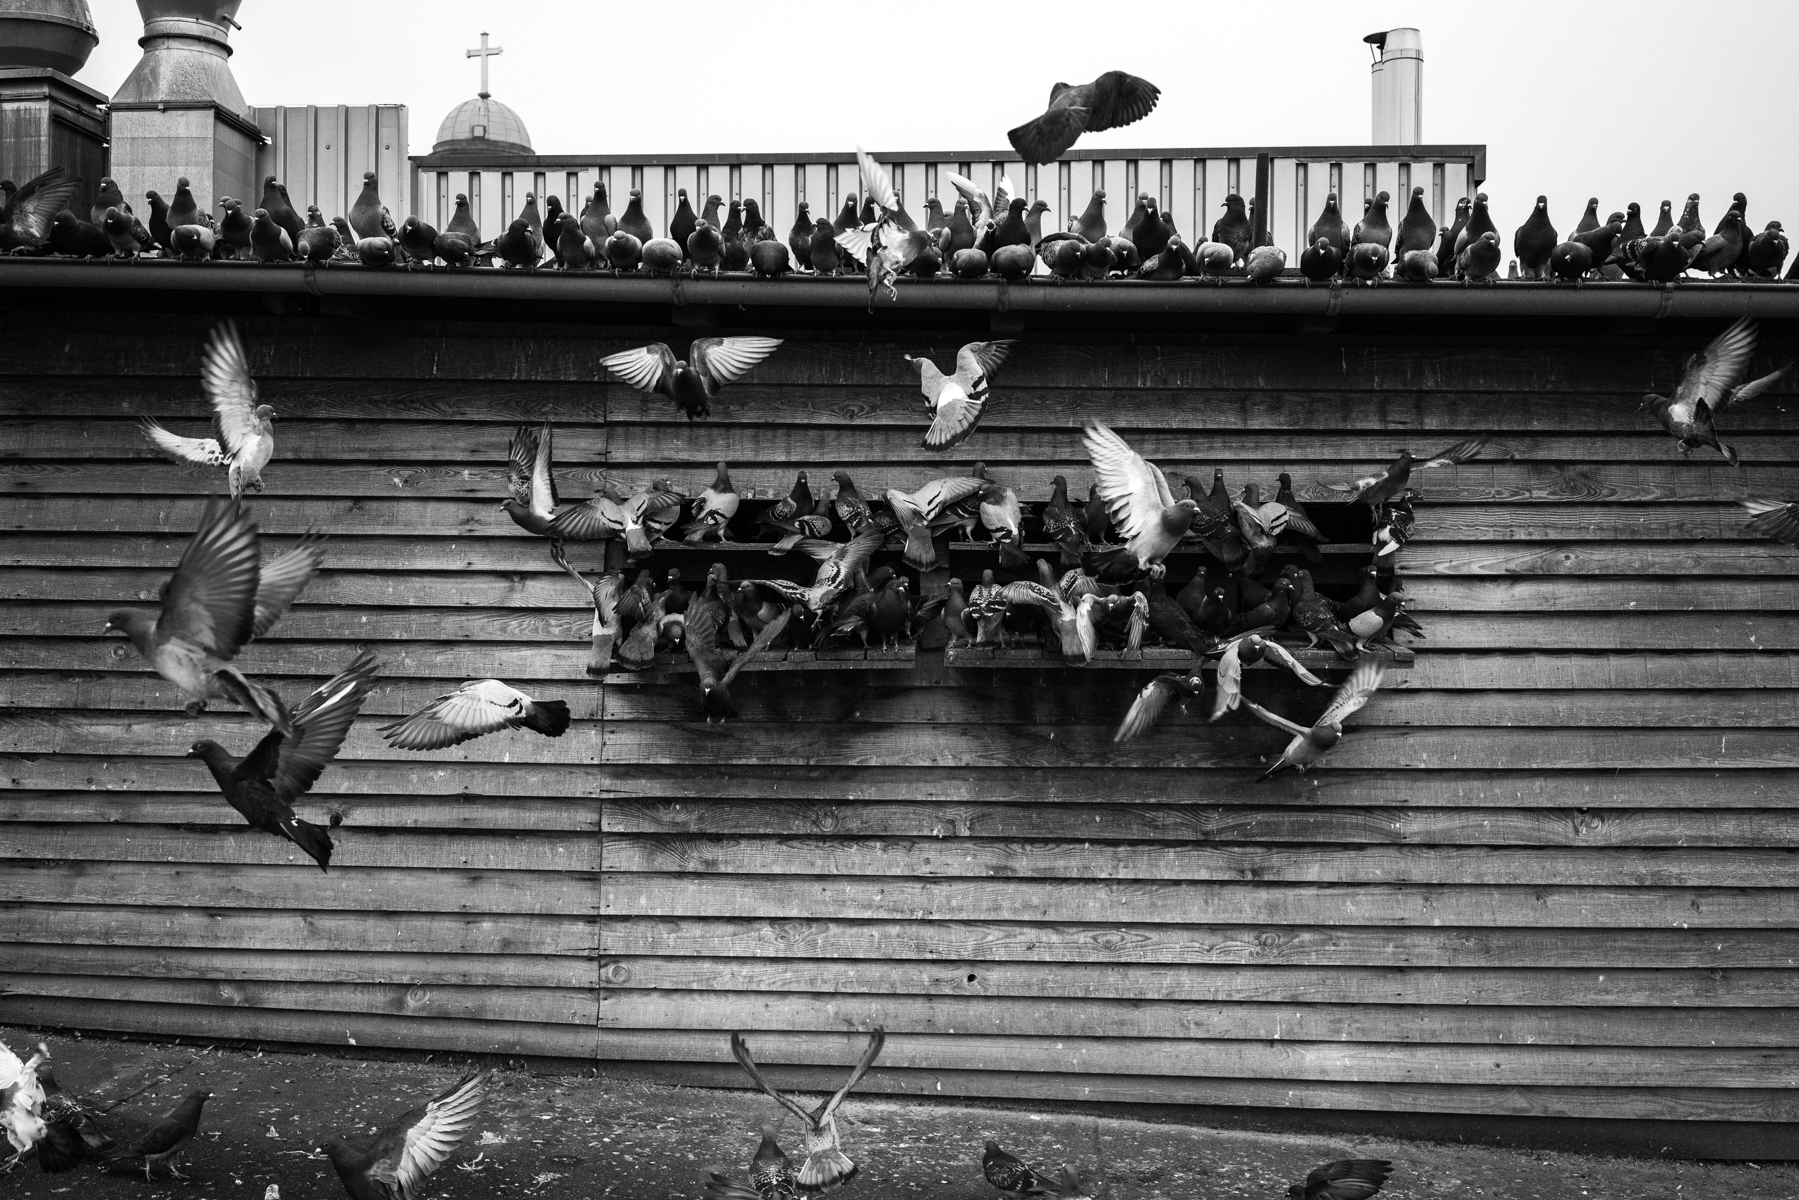 A pigeon den on top of a parking garage in downtown Frankfurt. The activists from the 'Stadttaubenprojekt' supply the den with food every couple of days, so the pigeons do not populate public places in their search for food. The pigeon's eggs are also replaced with dummies once or twice a week, so the pigeon populations do not increase. Even though the 'Stadttaubenprojekt's' methods in ethically dealing with pigeons are highly successful - most prominently in the city of Wiesbaden - authorities in Frankfurt hesitate or refuse to build more dens. They prefer controversial methods like spikes, nets, hawks or cages that can harm or kill pigeons and other birds and are much more expensive than dens. Some politicians think that the dens are ineffective since they are populated by too many pigeons. Reason does not often apply when it comes to pigeons in Frankfurt and in most parts of the world, since a with a higher number of dens the pigeons could spread on several of them.